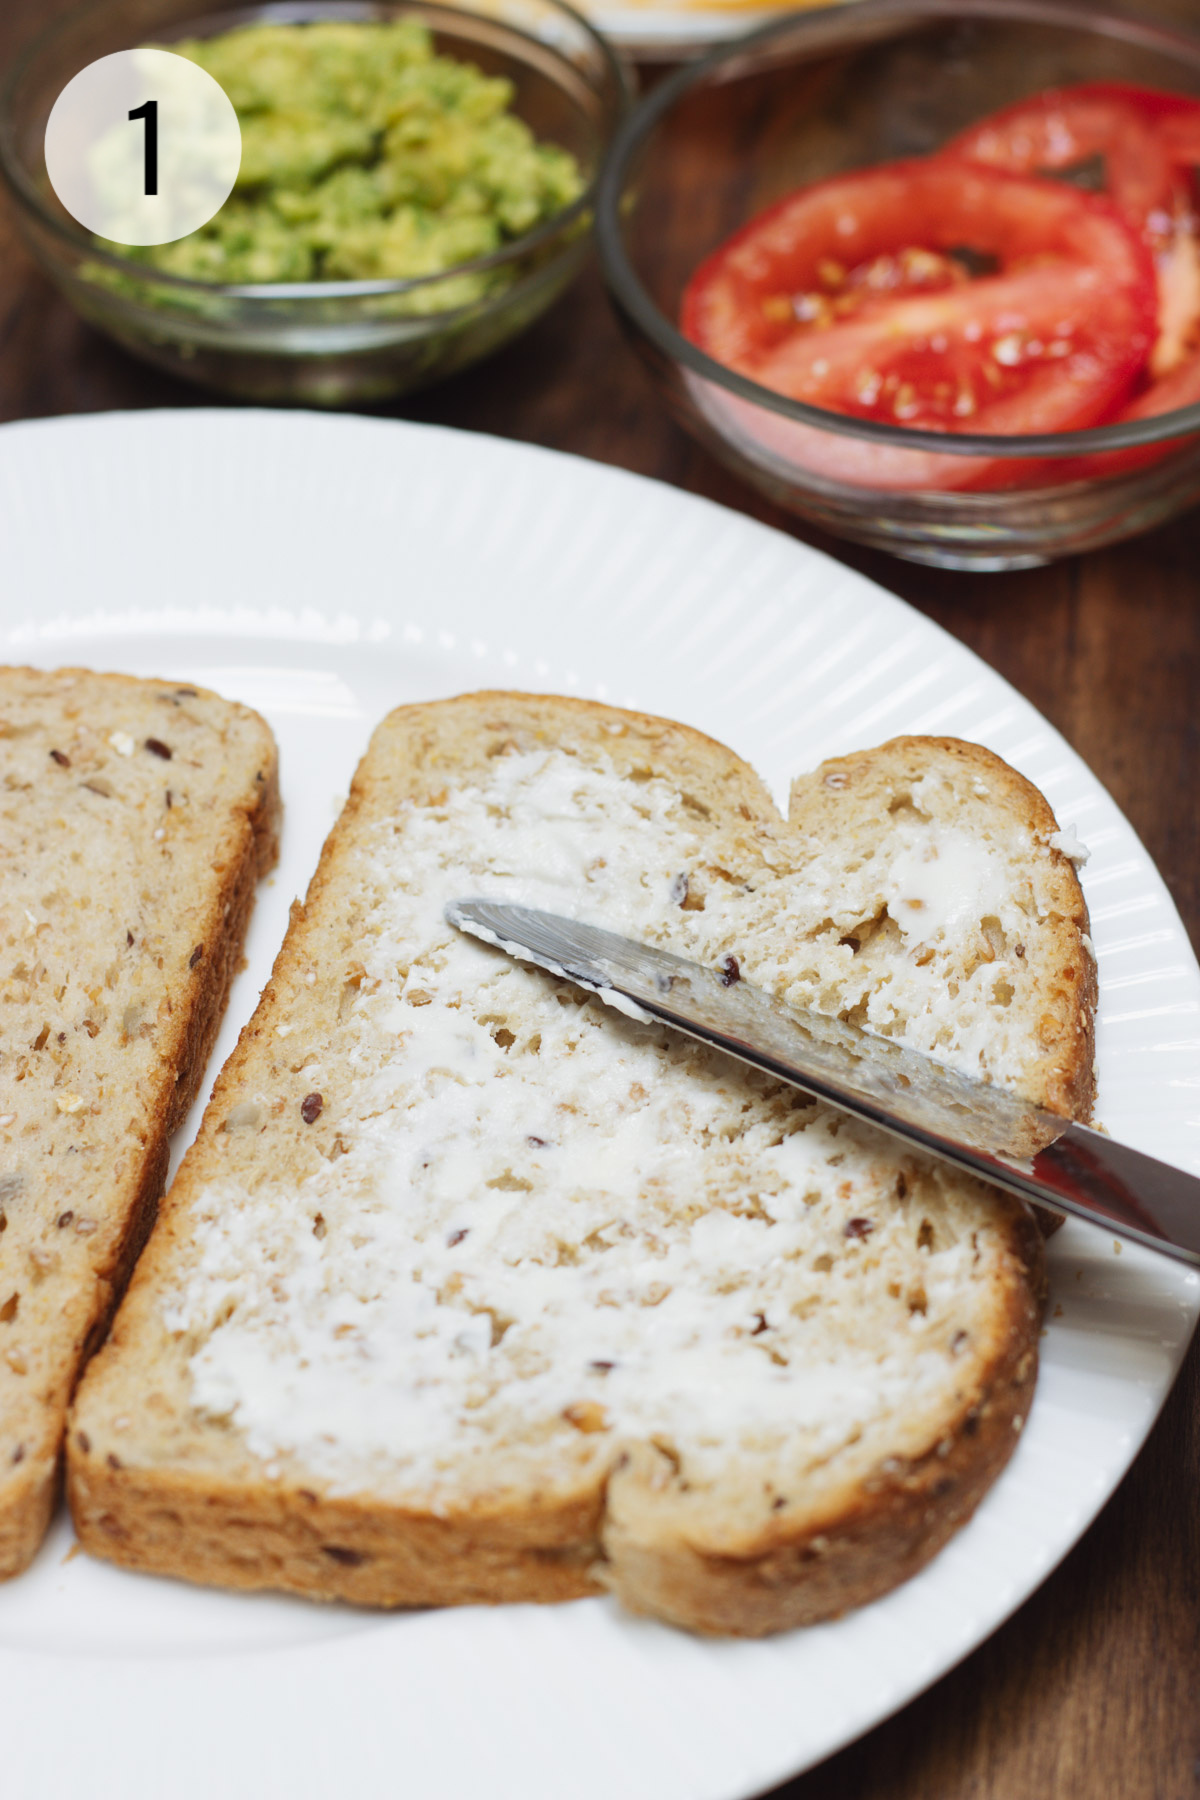 Knife spreading butter on a piece of whole grain bread with tomato and avocado in background.